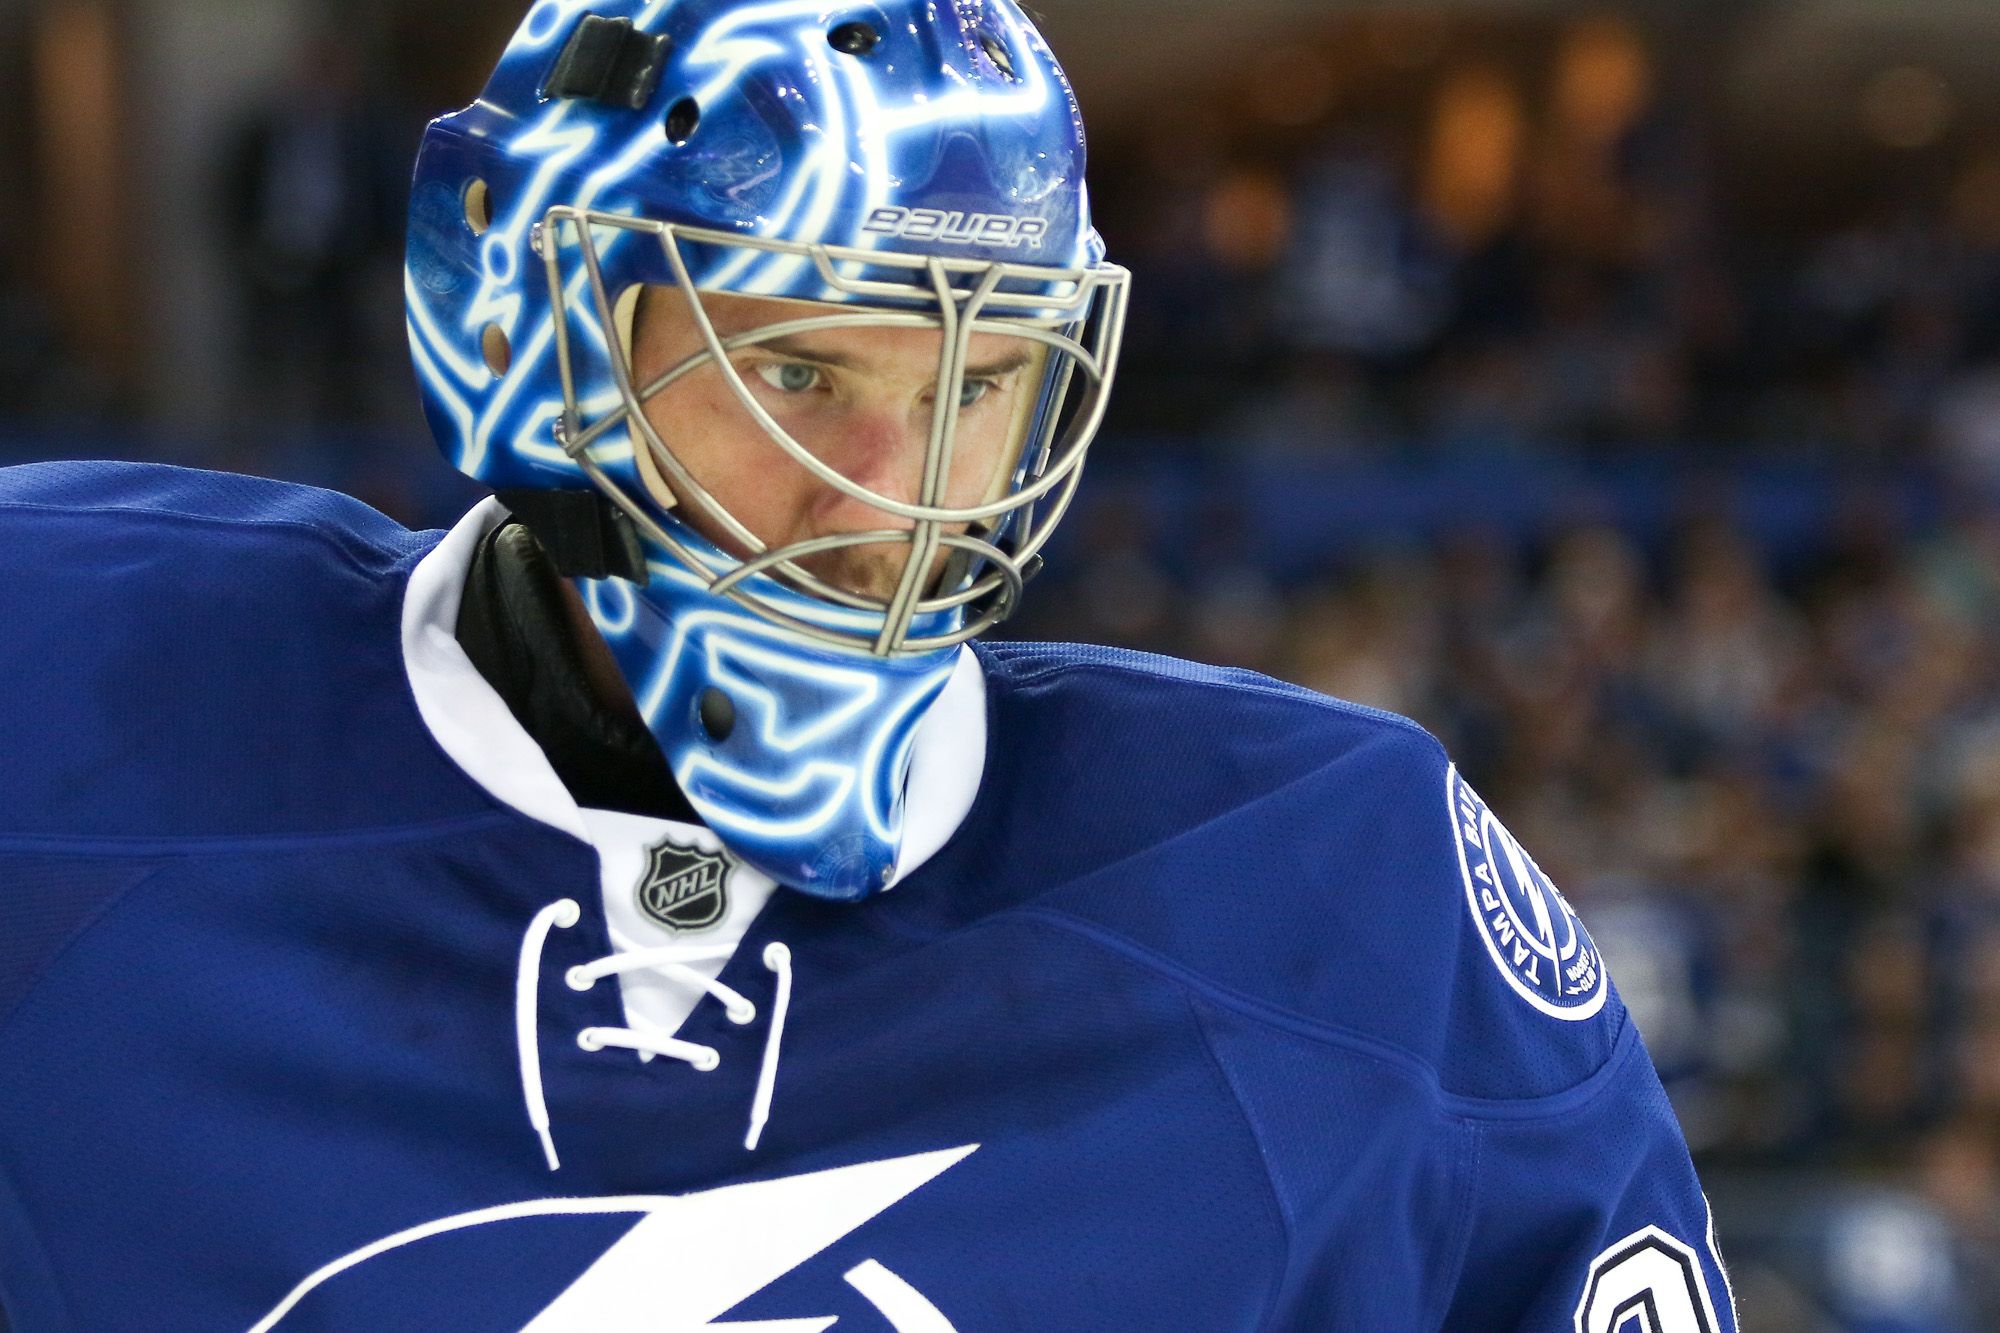 For the new fans of the Lightning, and others, this has been hard to watch../ANDREW J. KRAMER